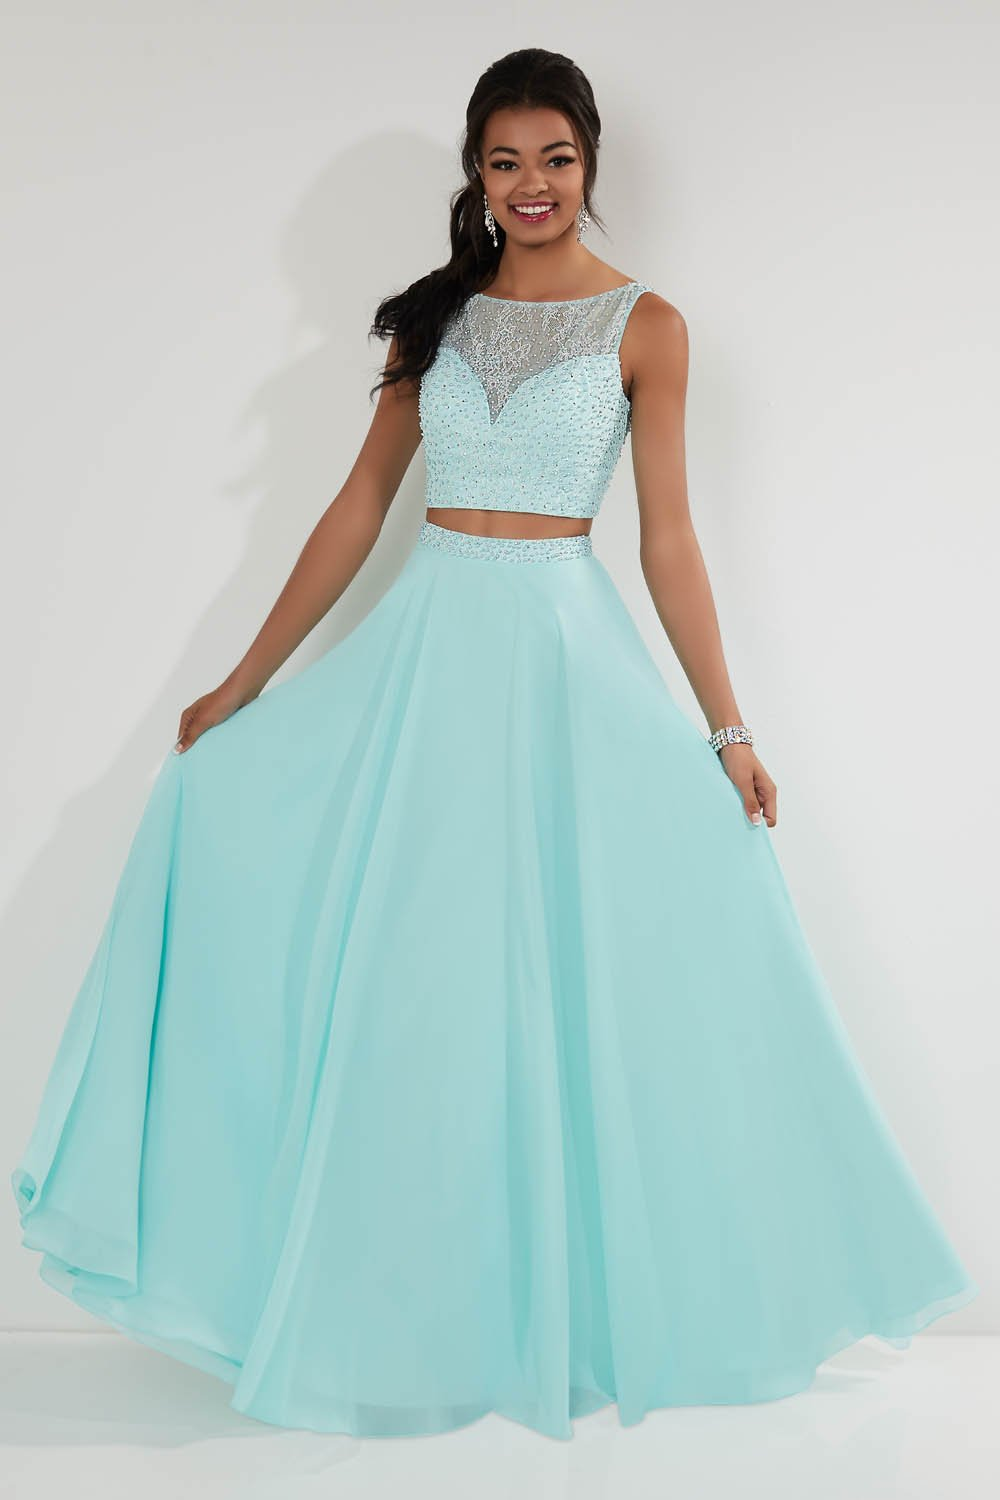 Studio 17 12728 prom dress images.  Studio 17 12728 is available in these colors: Lilac, Ocean.